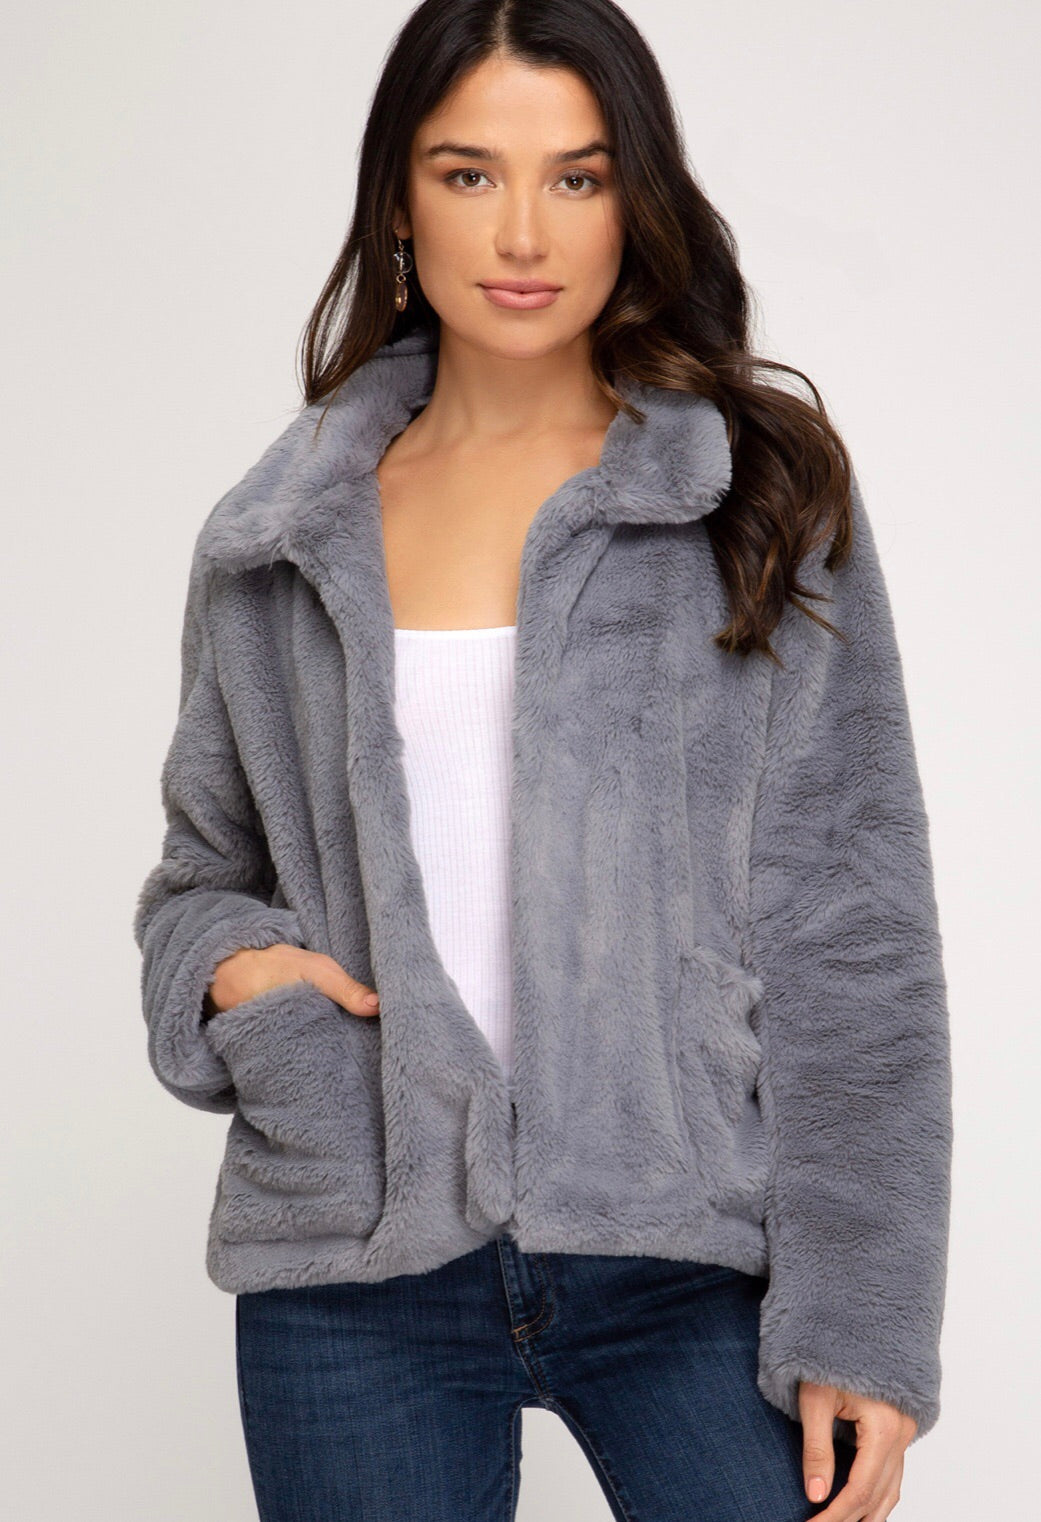 Cropped Bear Jacket Preorder - Blush Boutique